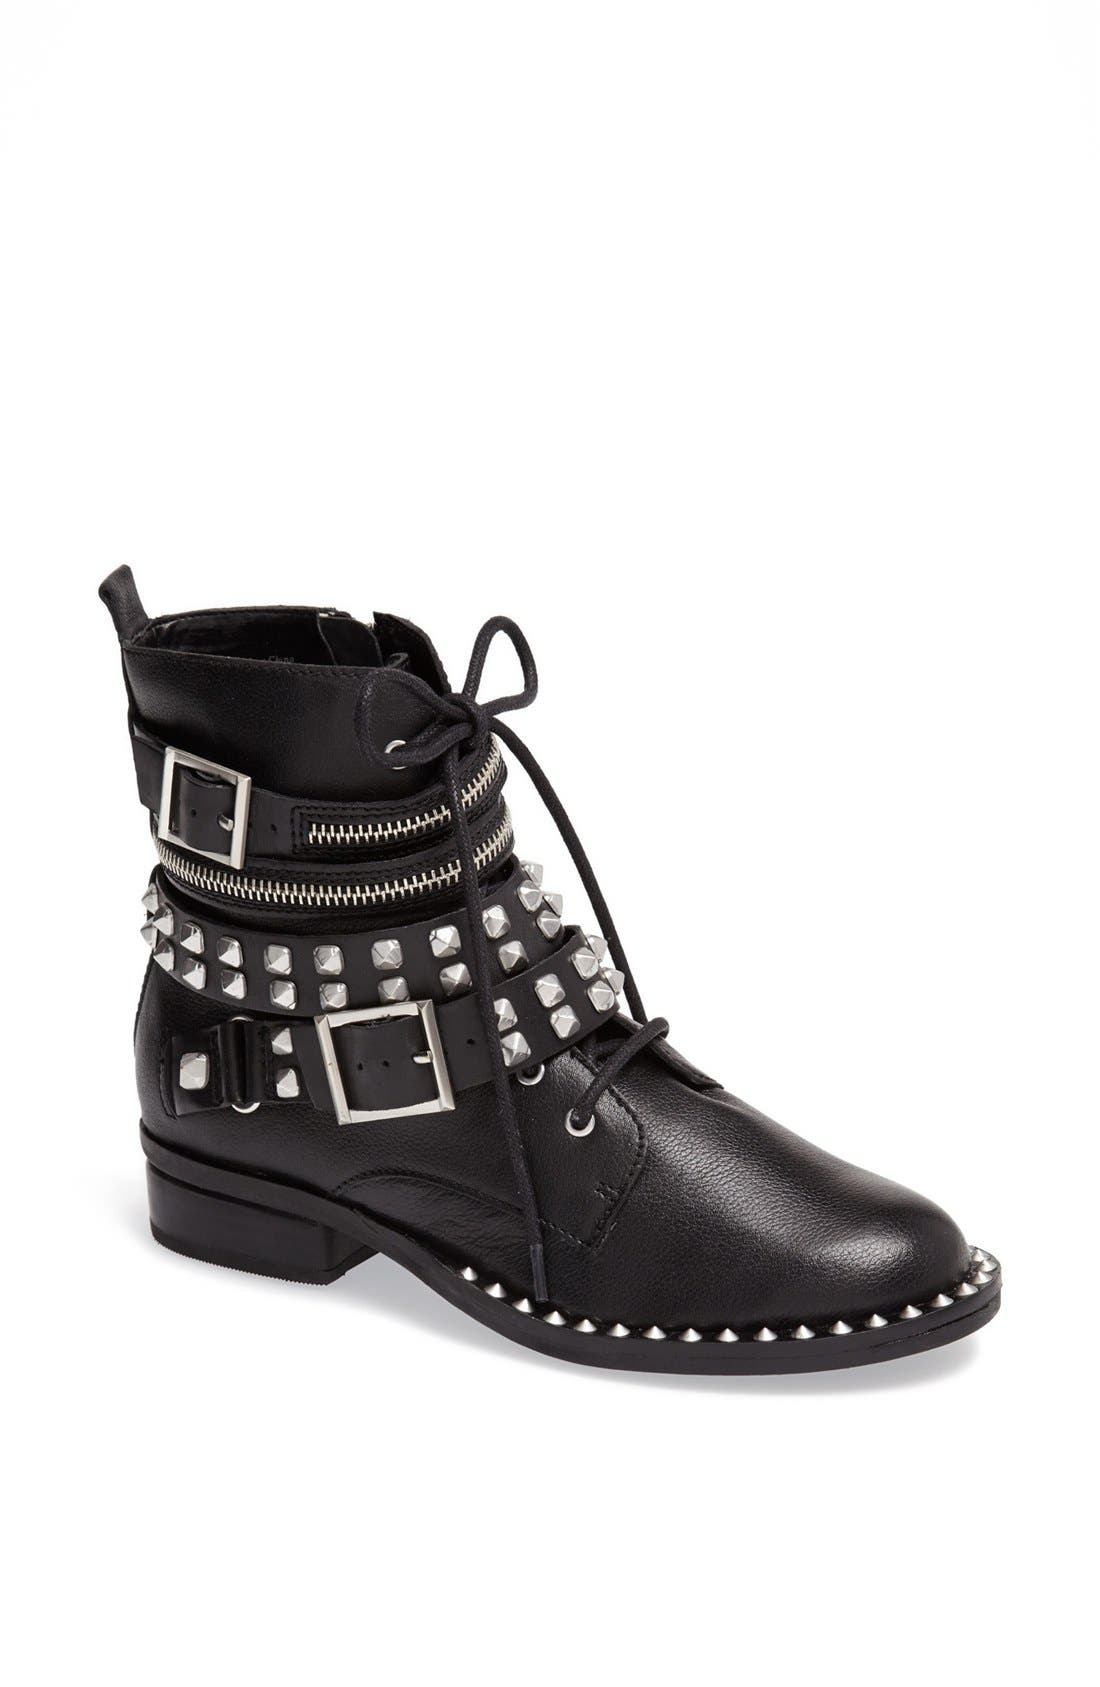 Main Image - DV by Dolce Vita 'Stirling' Boot